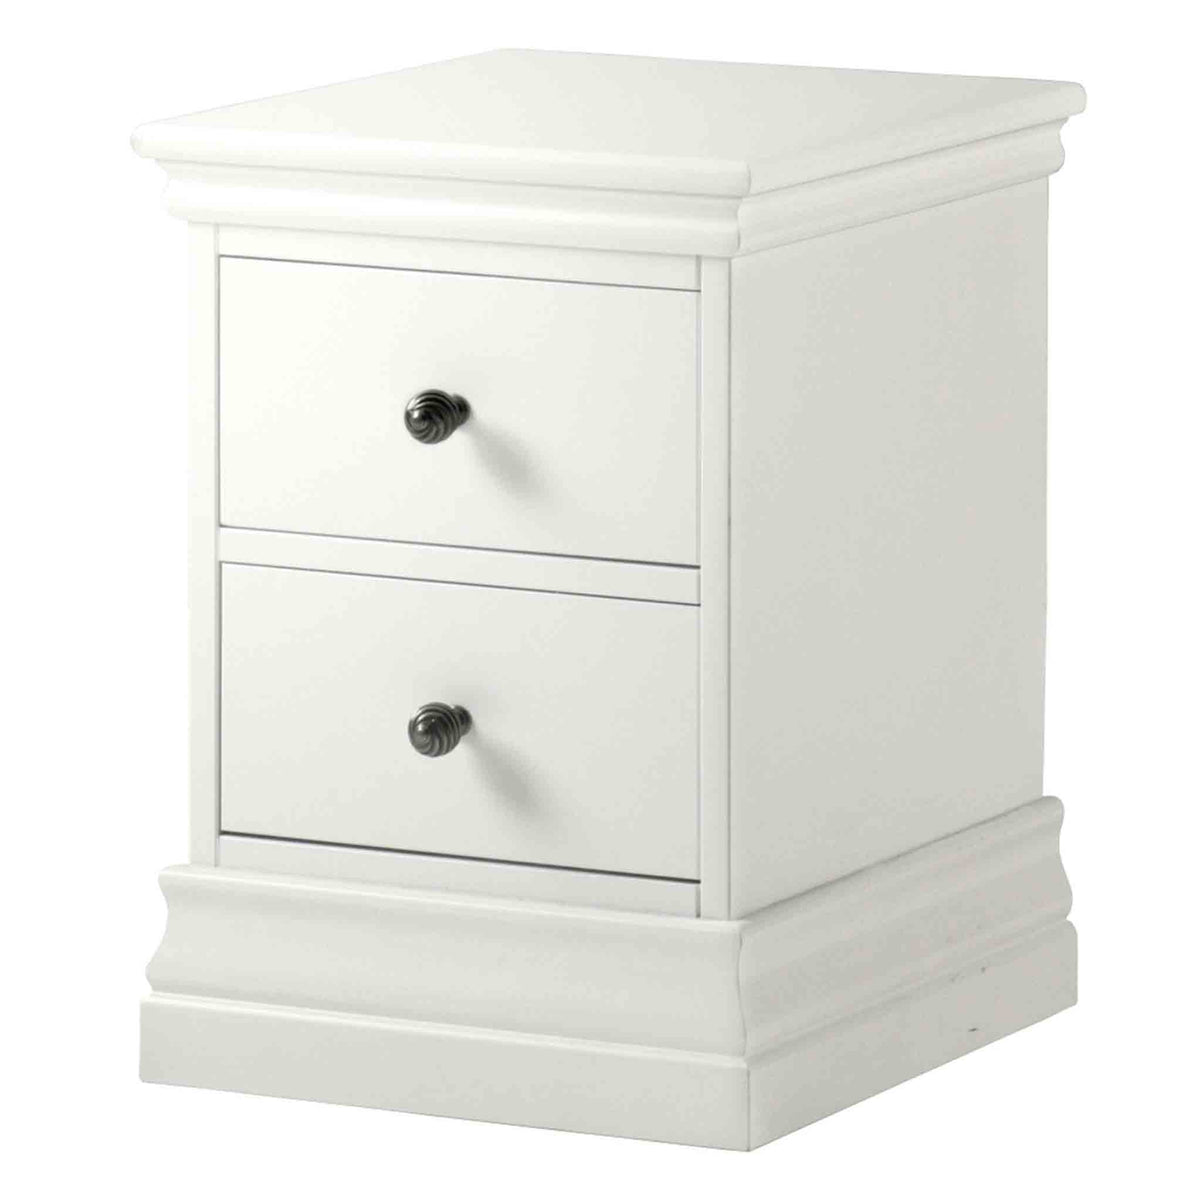 Melrose White Narrow Bedside Cabinet from Roseland Furniture